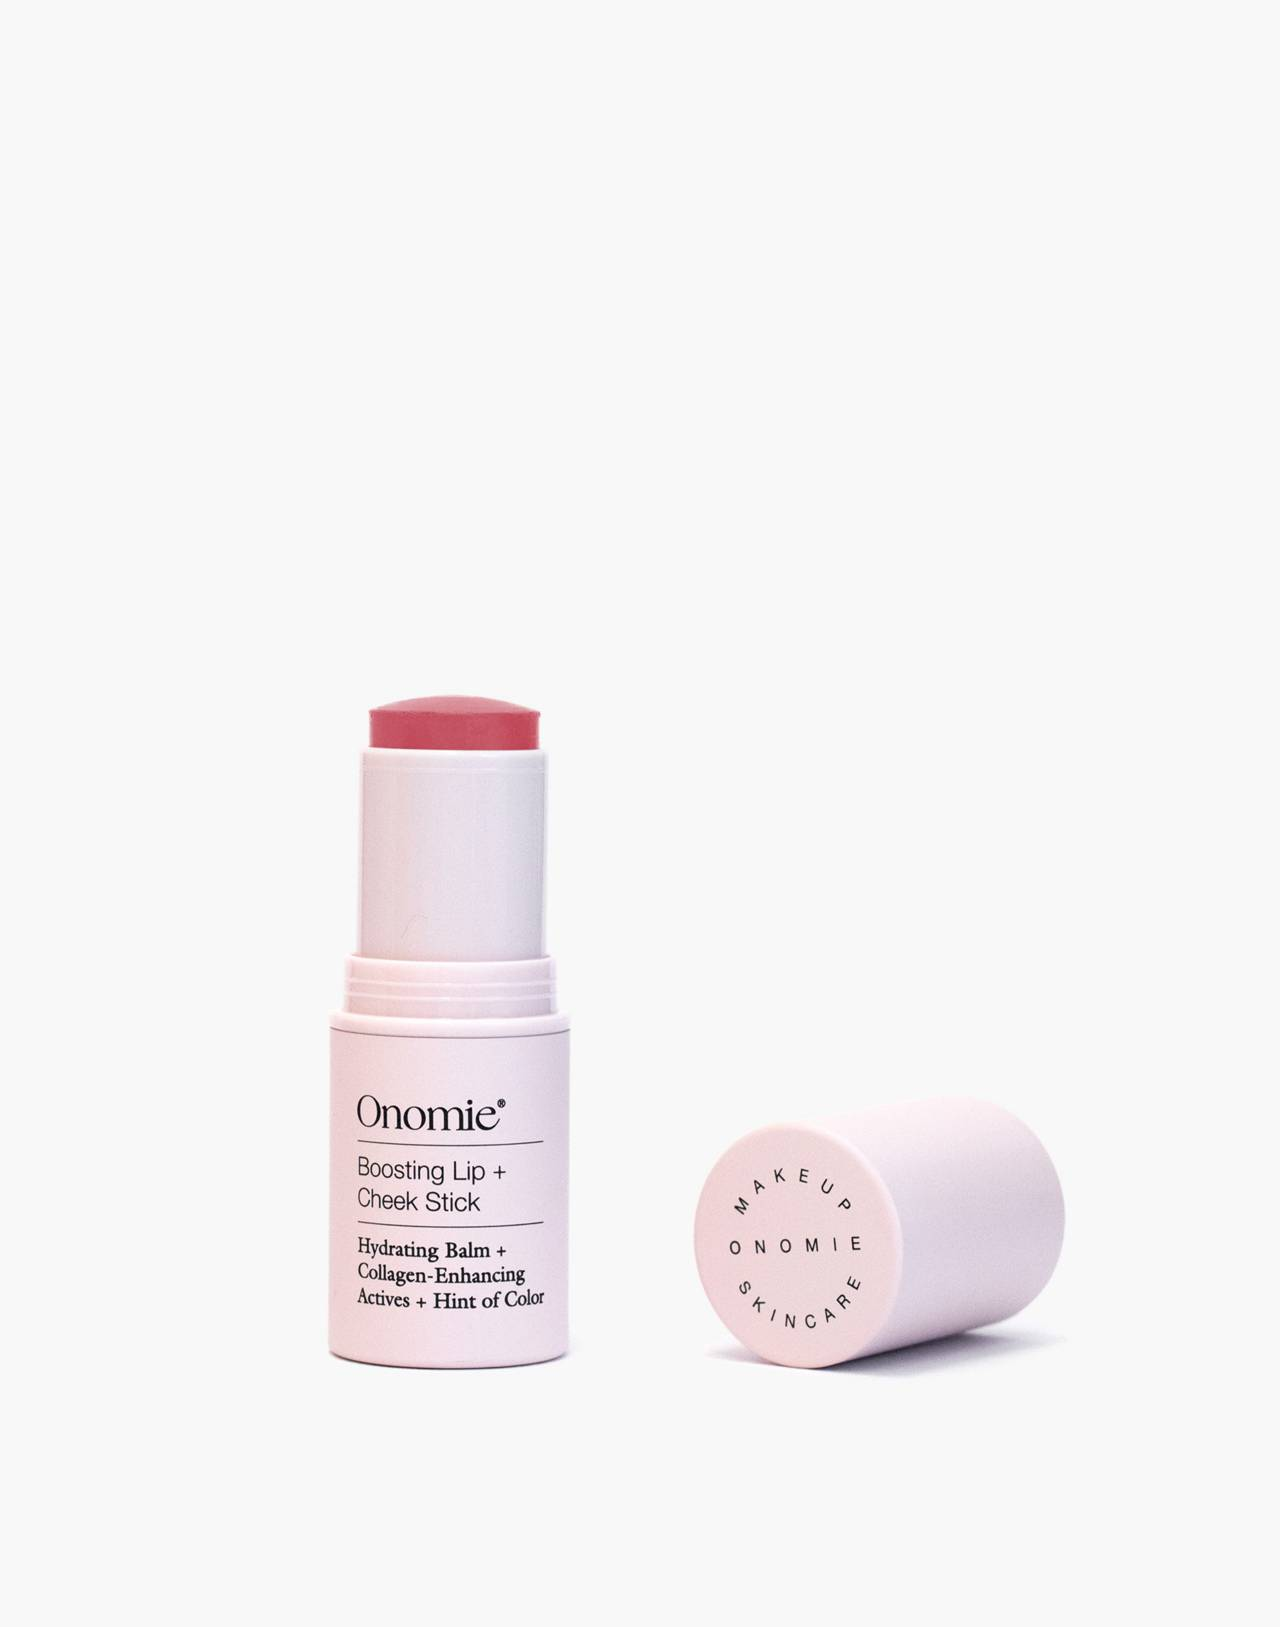 Onomie® Boosting Lip and Cheek Stick in pink image 1